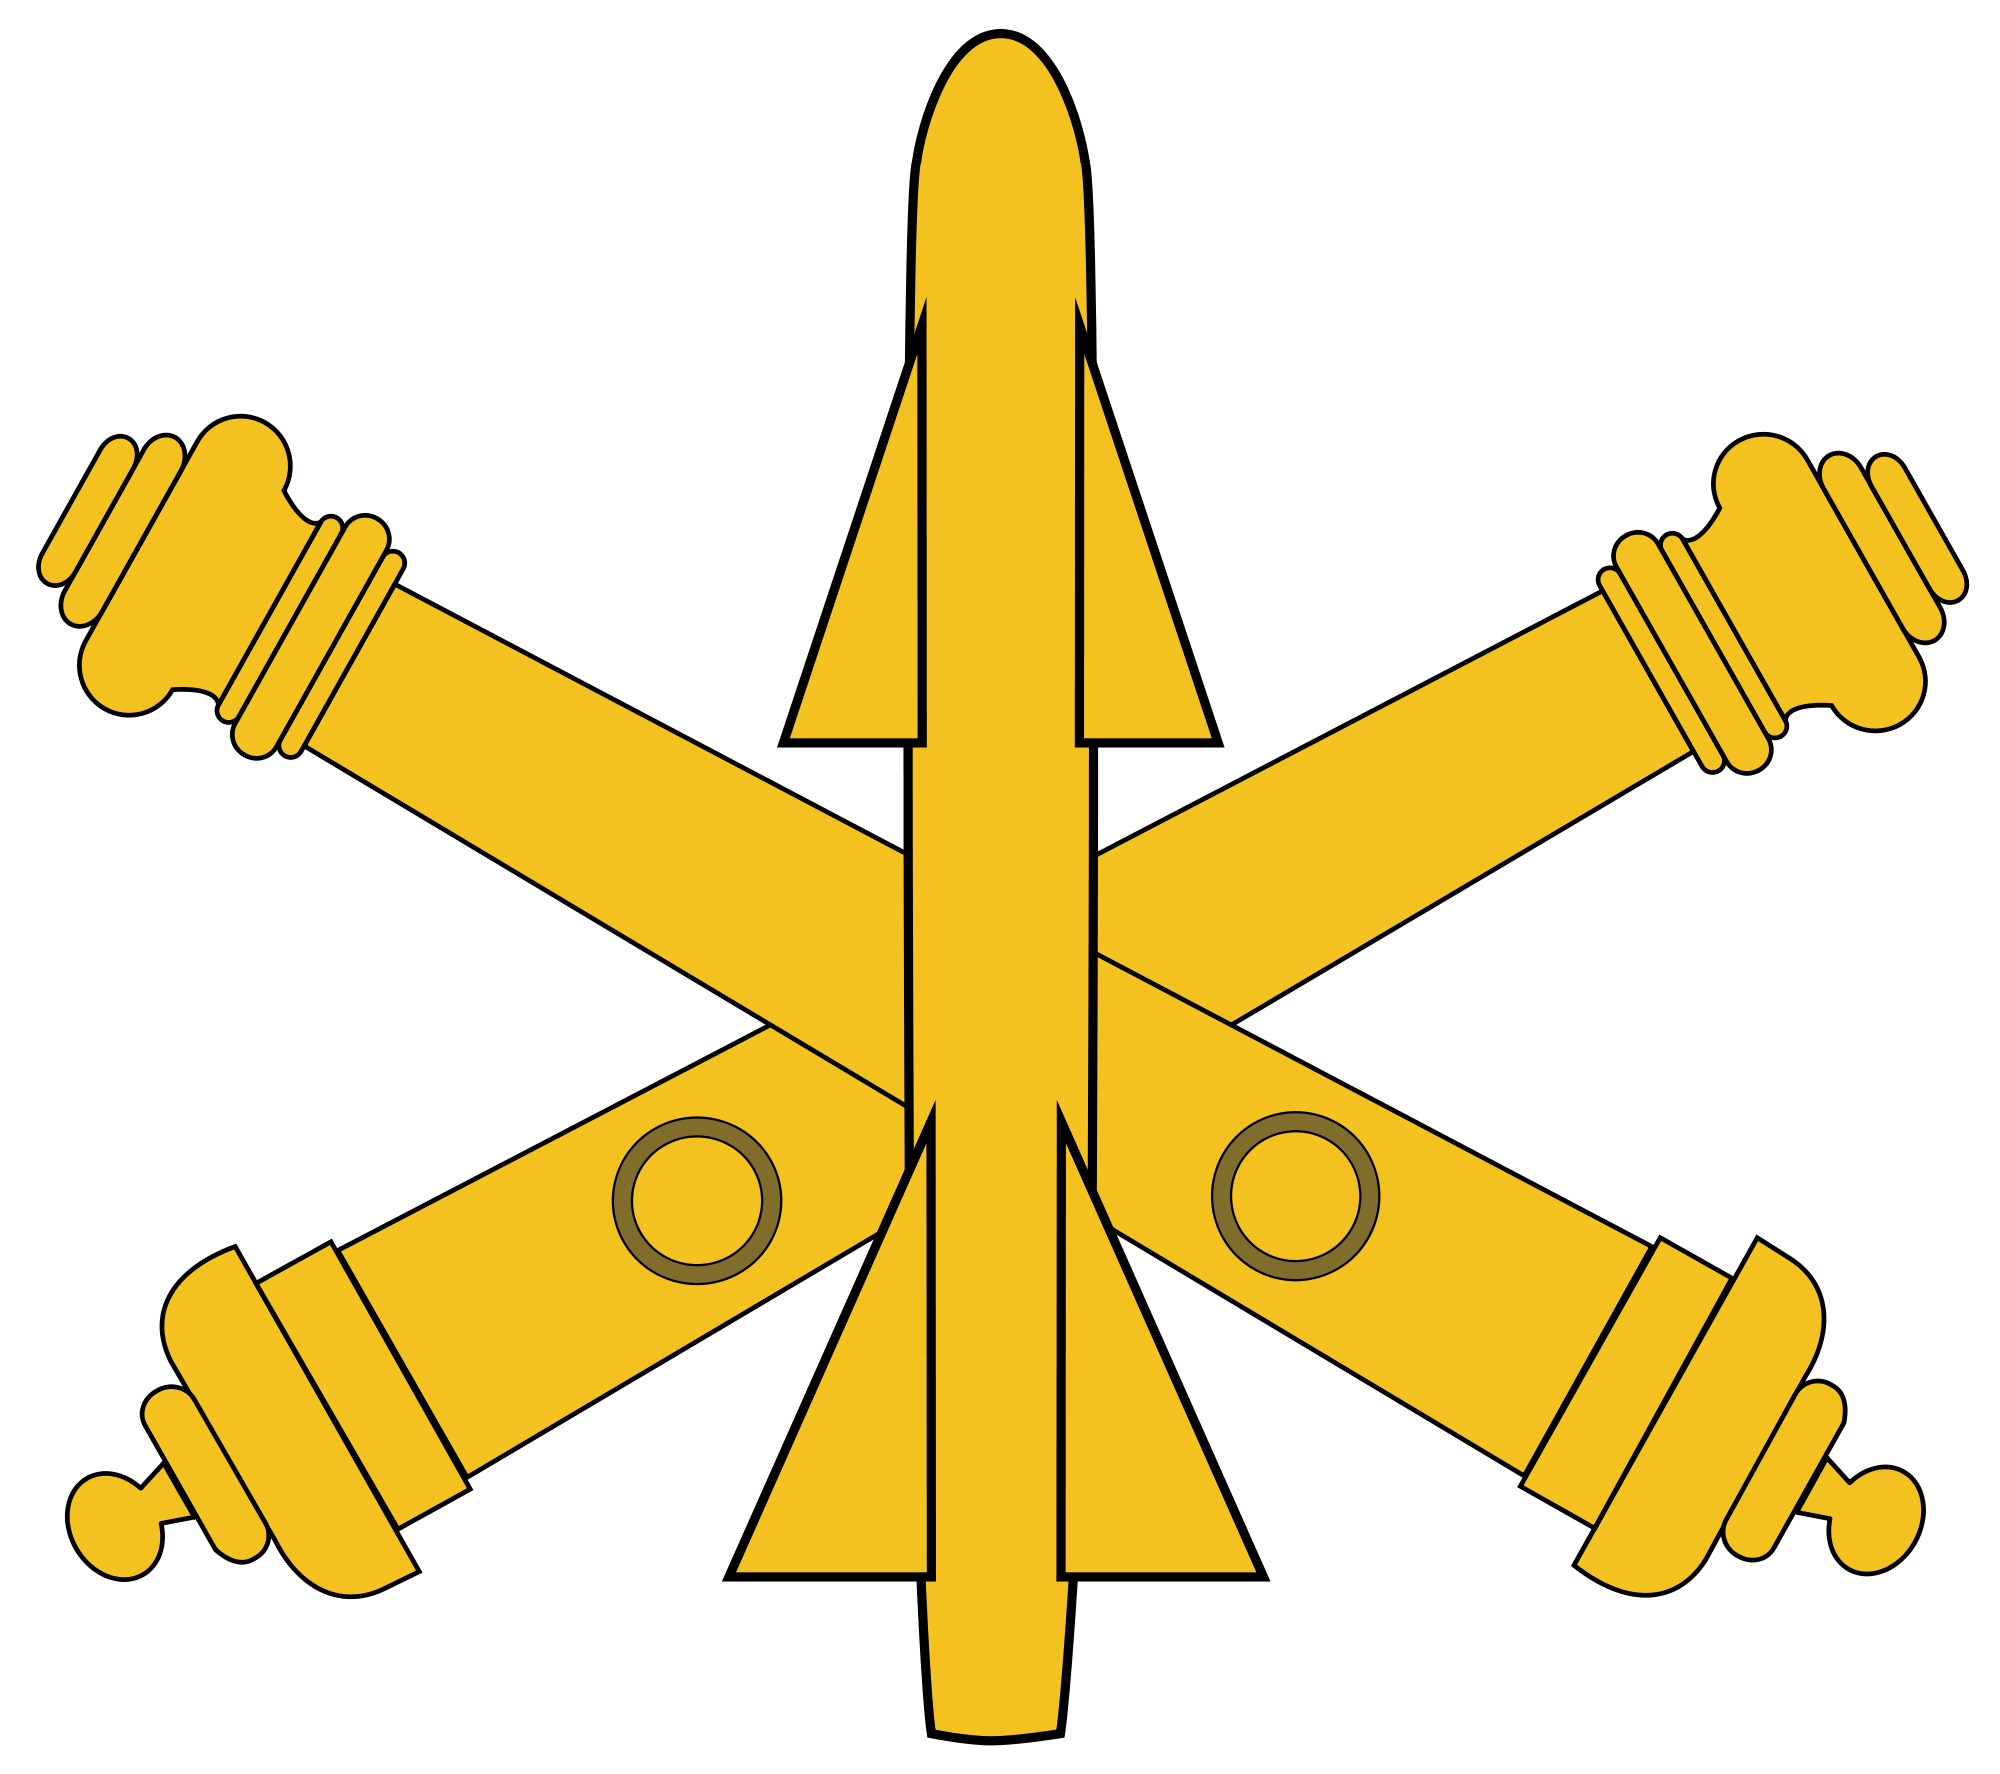 Missile clipart artillery Wikimedia Open Commons BRANCH File:USAADA